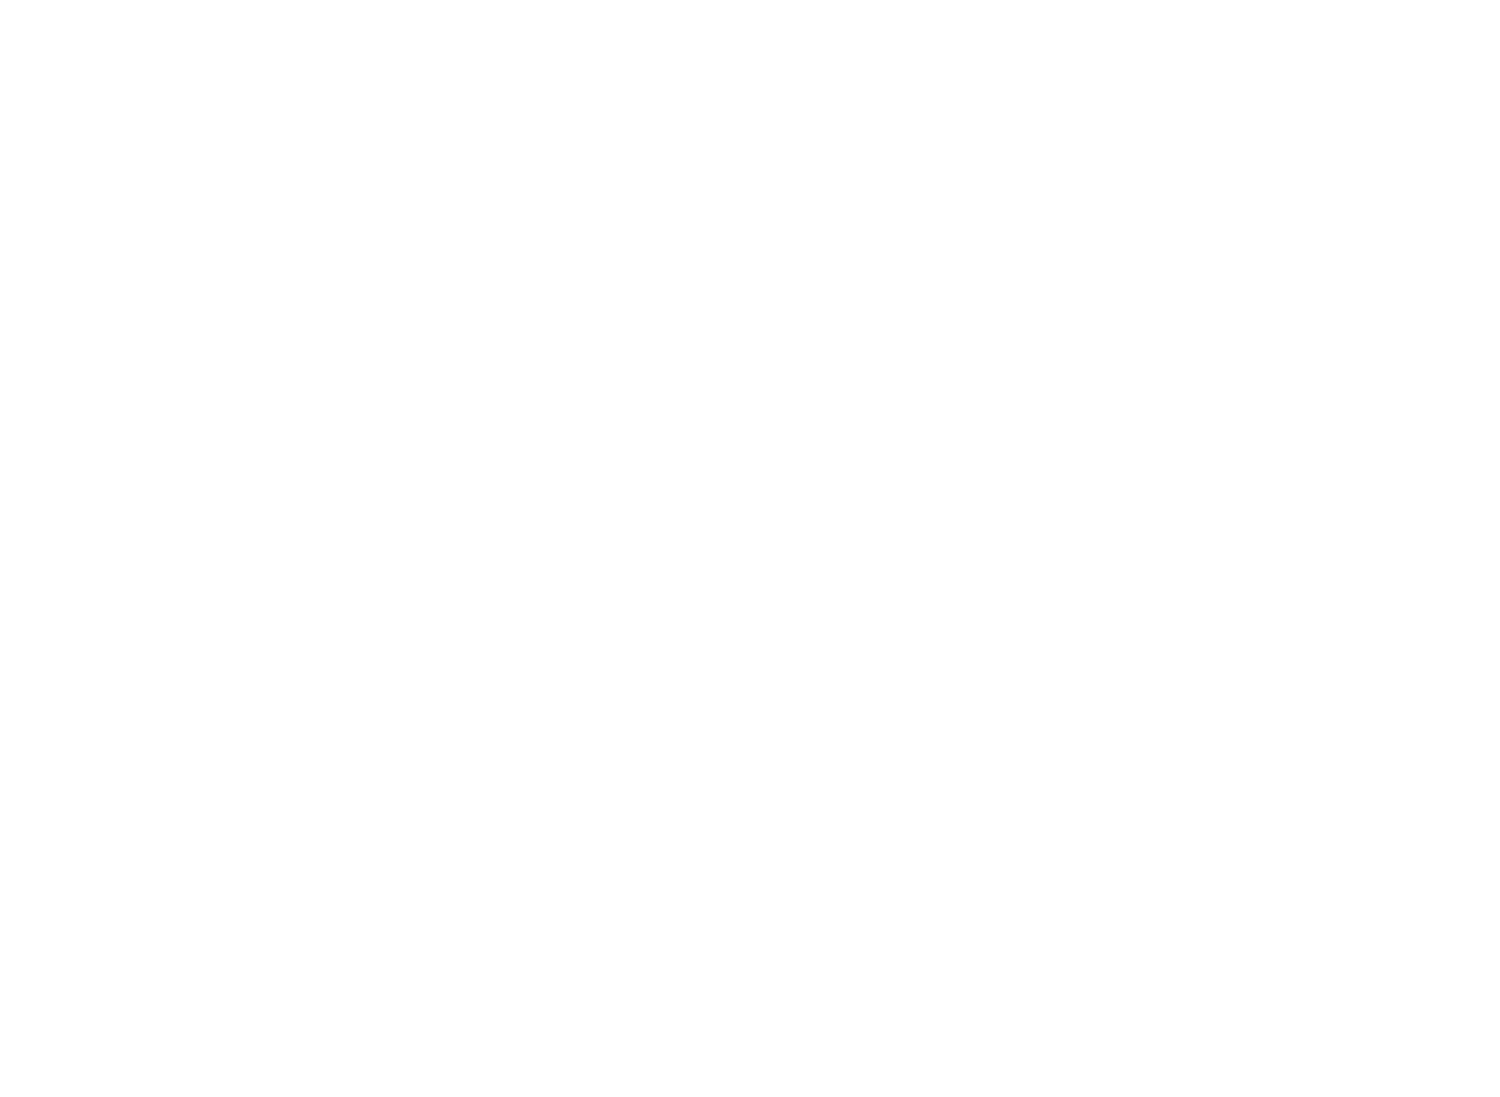 LOCAL CHOP & GRILL HOUSE